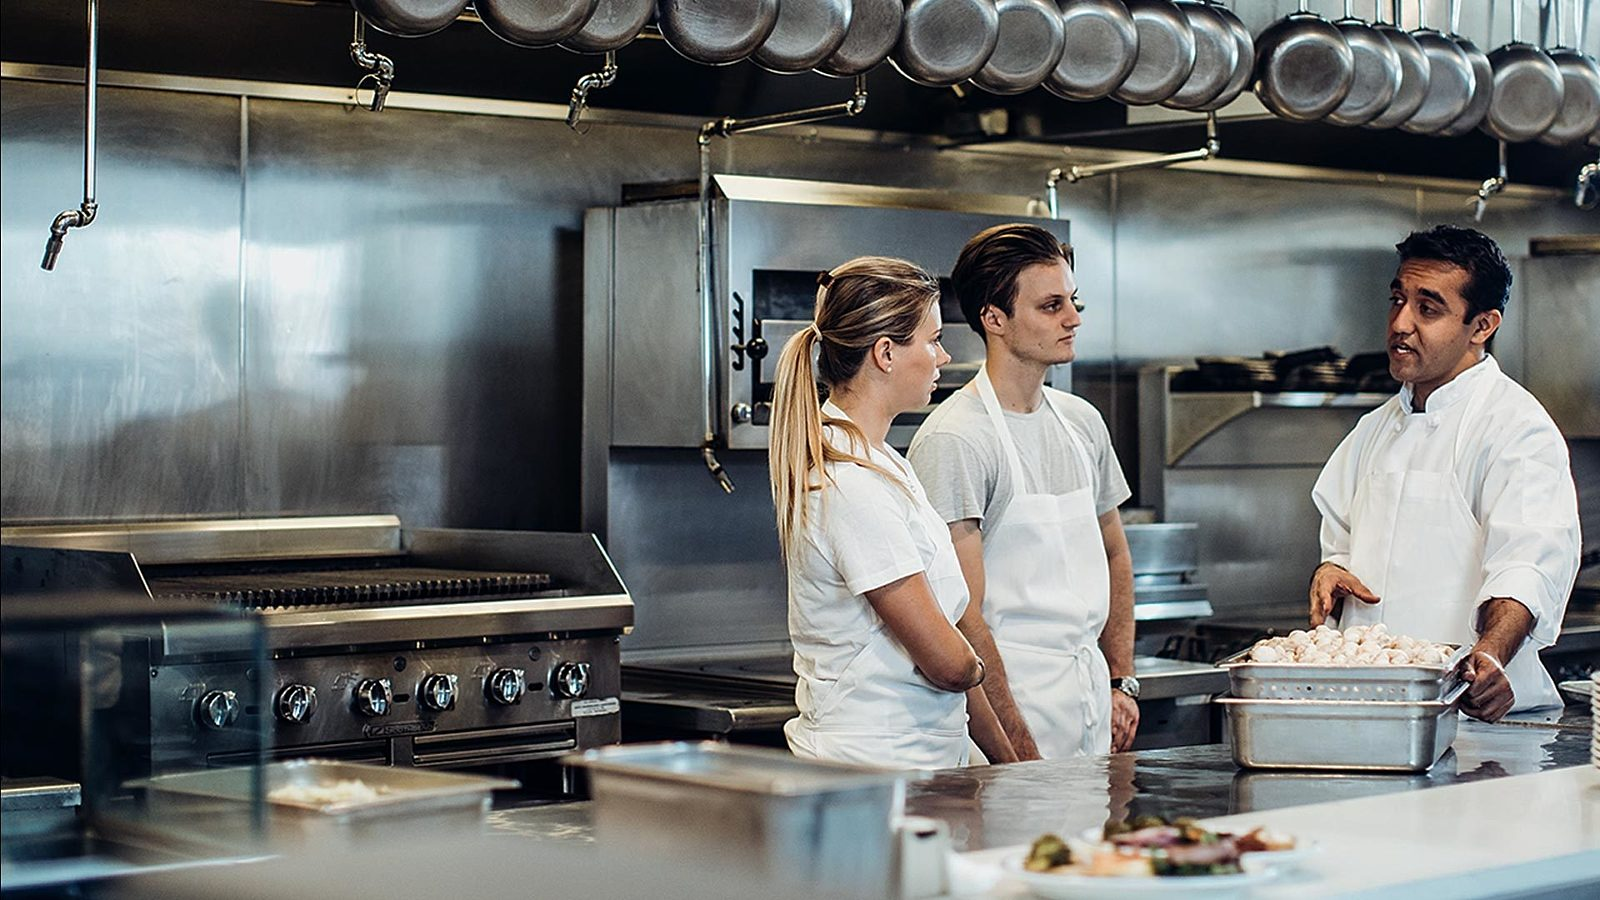 Millennials learning from a chef.